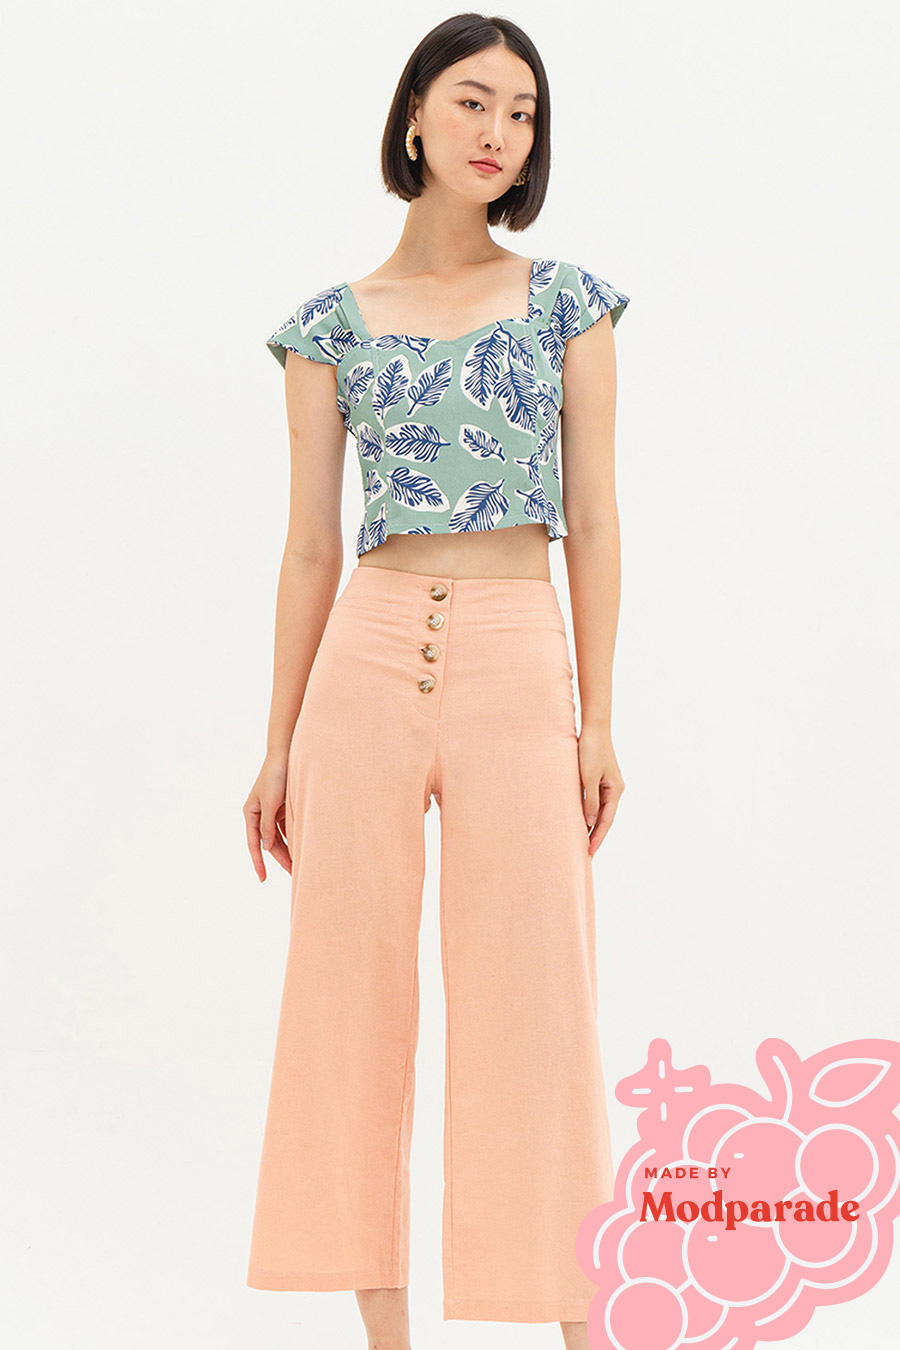 DUET PANTS - FAIRLADY [BY MODPARADE]